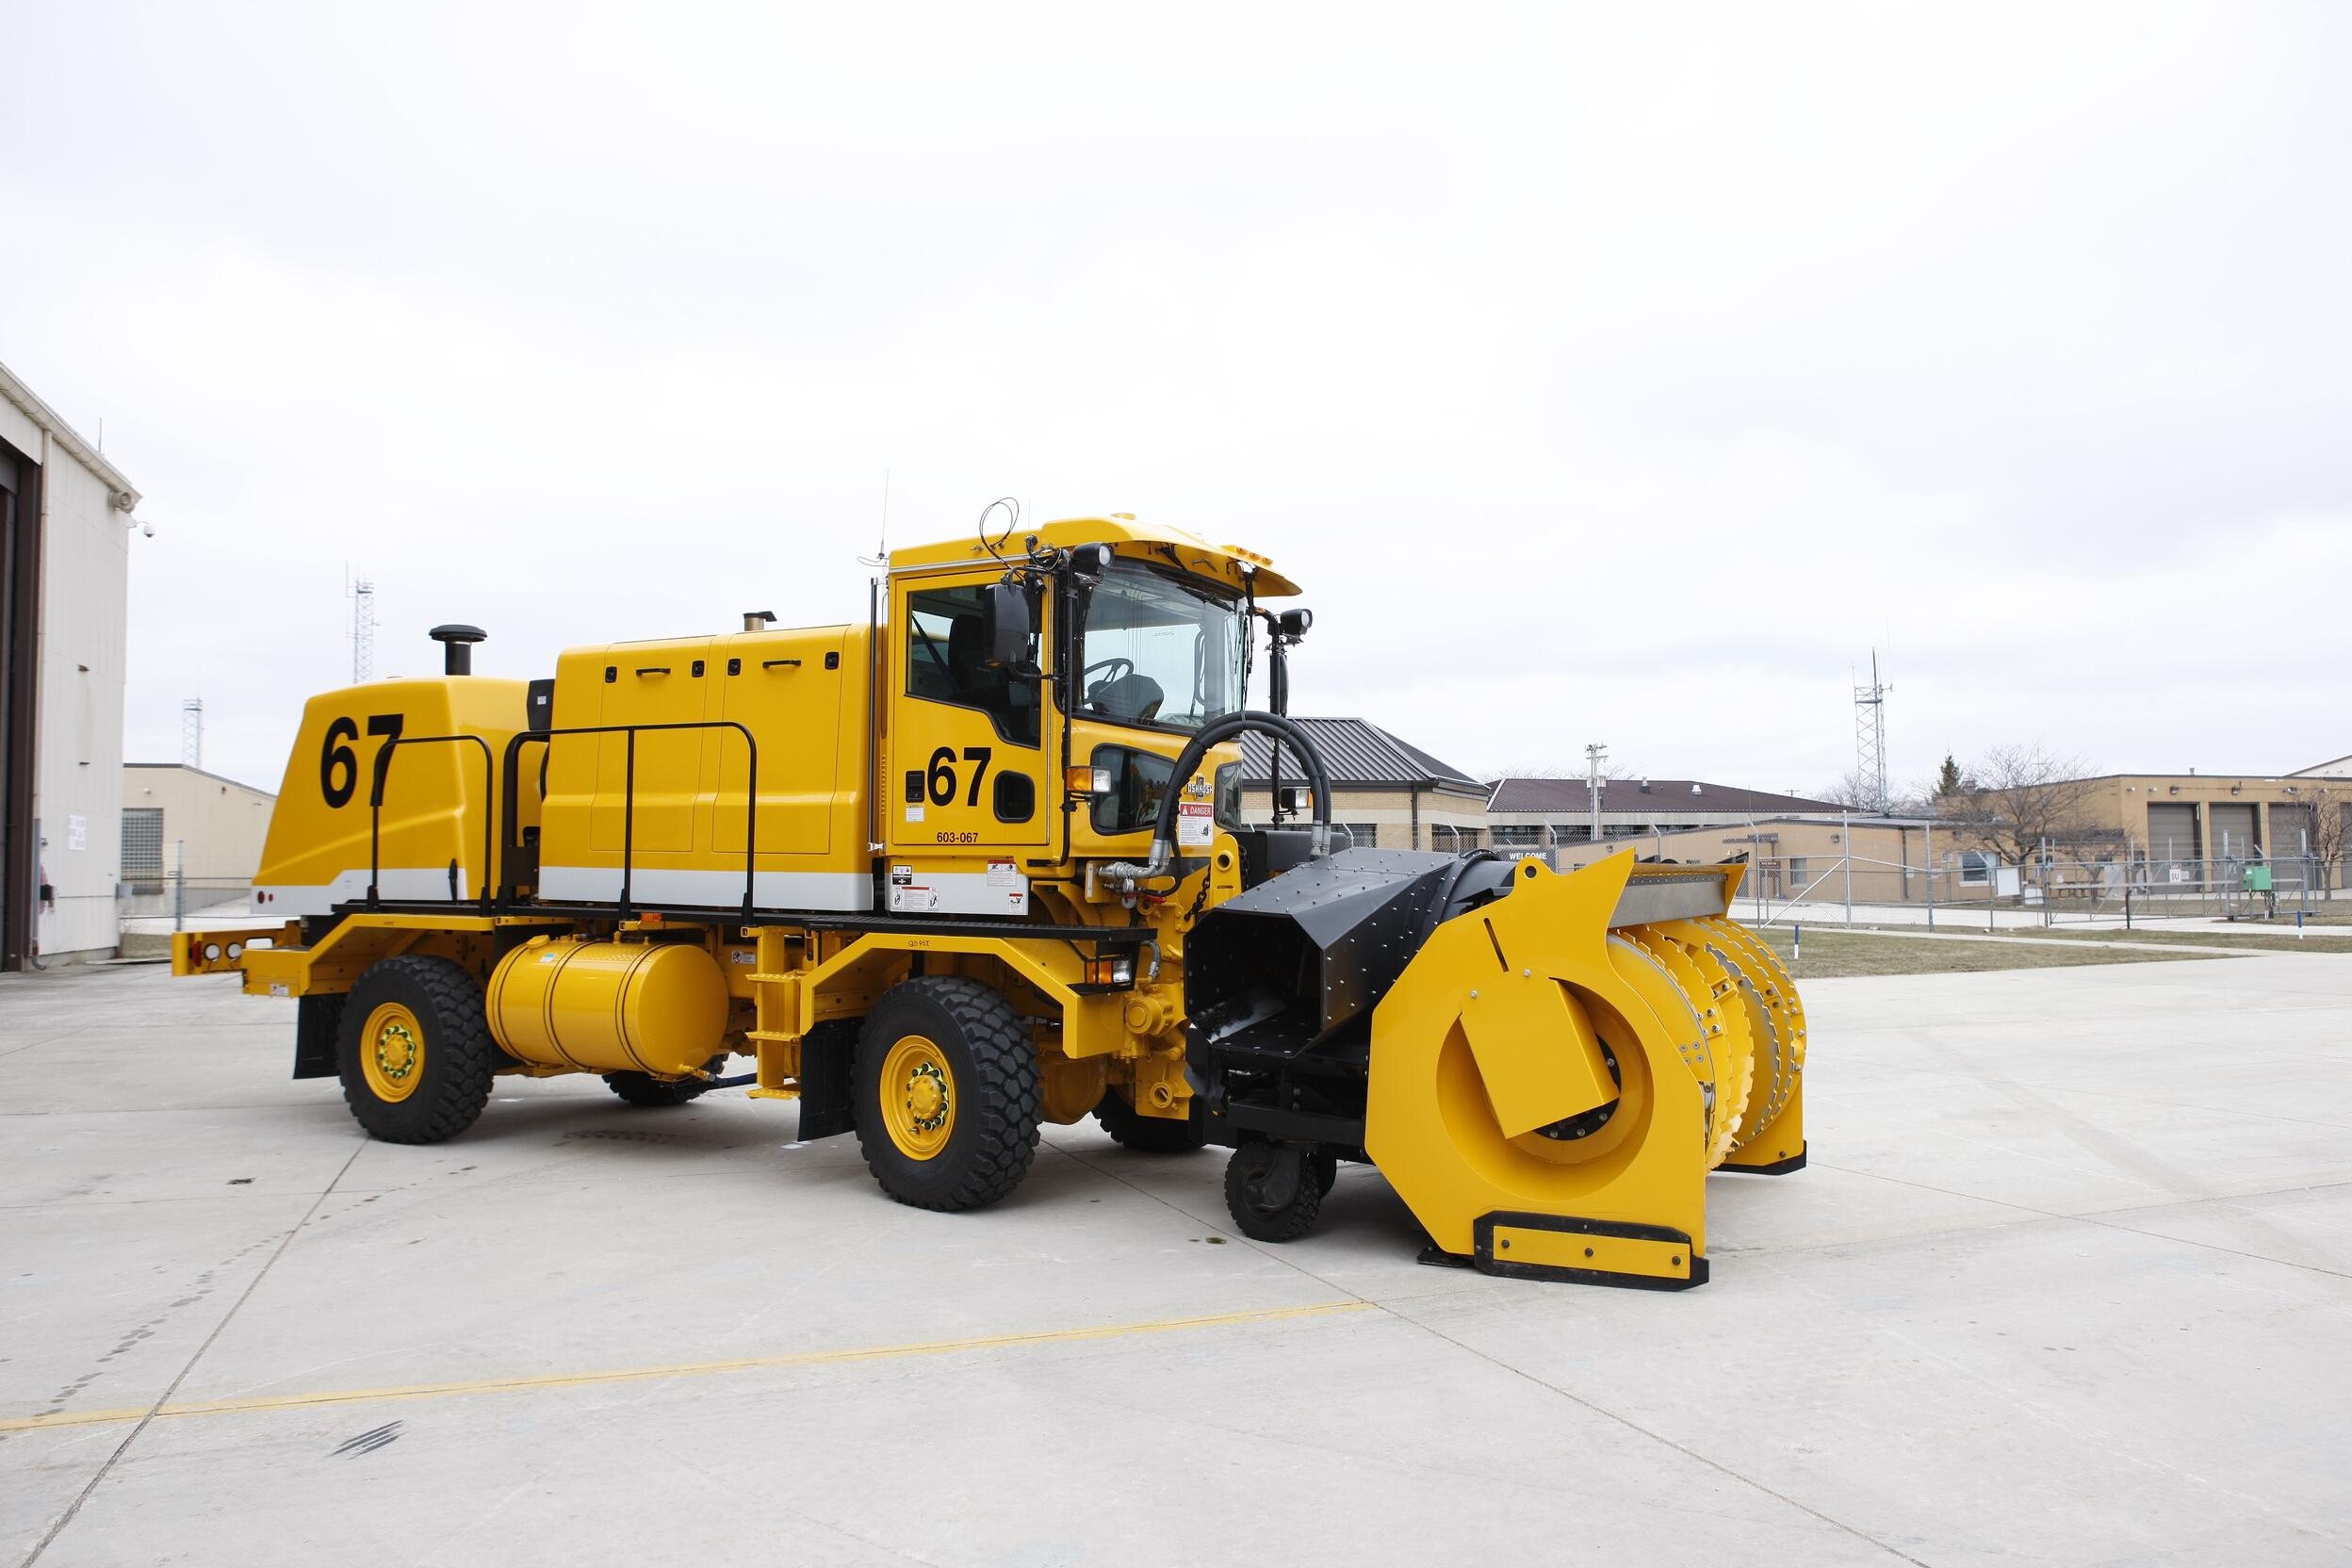 Oshkosh Snow Products H-Series Chassis